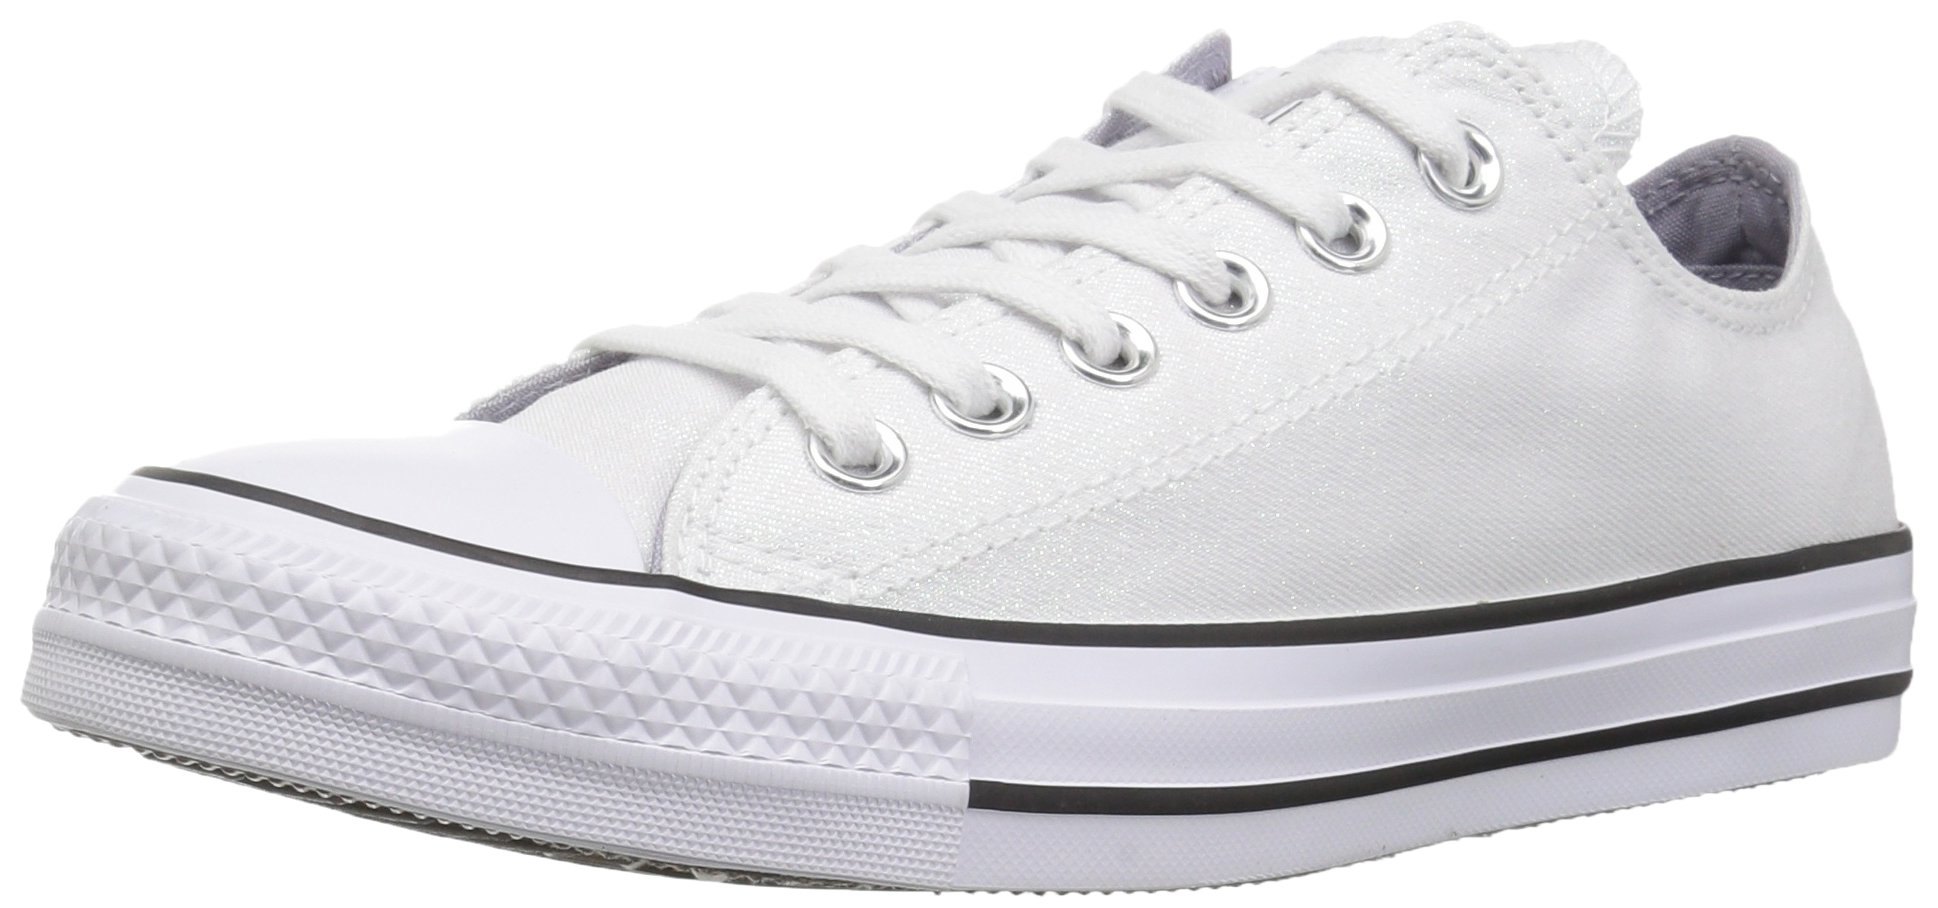 Converse Women's Chuck Taylor All Star Shiny Tile Low Top Sneaker, White/White/Black, 6.5 M US